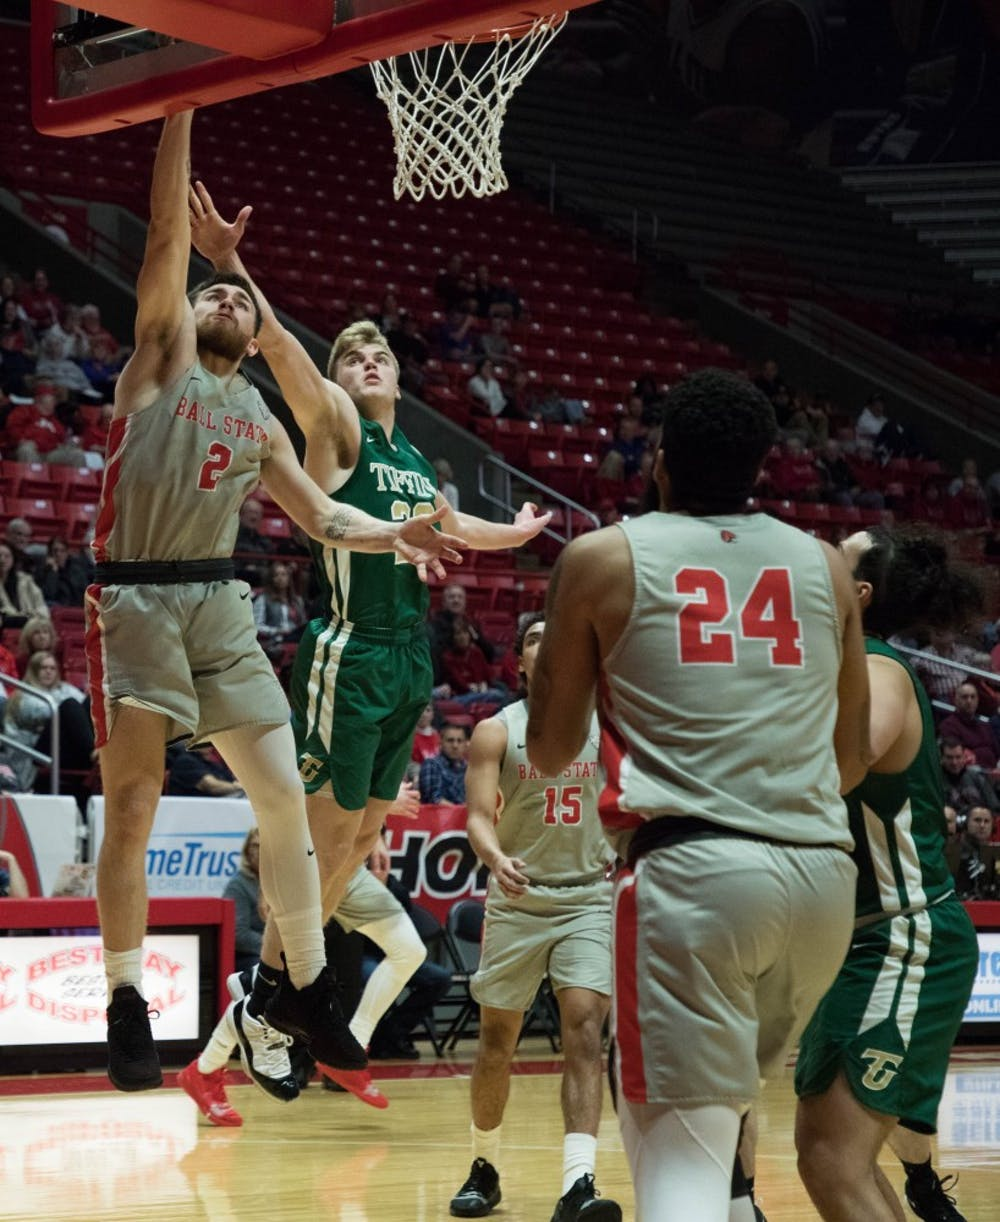 <p>Senior Tayler Persons jumps to score against the Tiffin Dragons at John E. Worthen Arena Nov. 27, 2018. Persons scored 20 points to lead the Cardinals to a 108-62 win. <strong>Jack Hart, DN</strong></p>